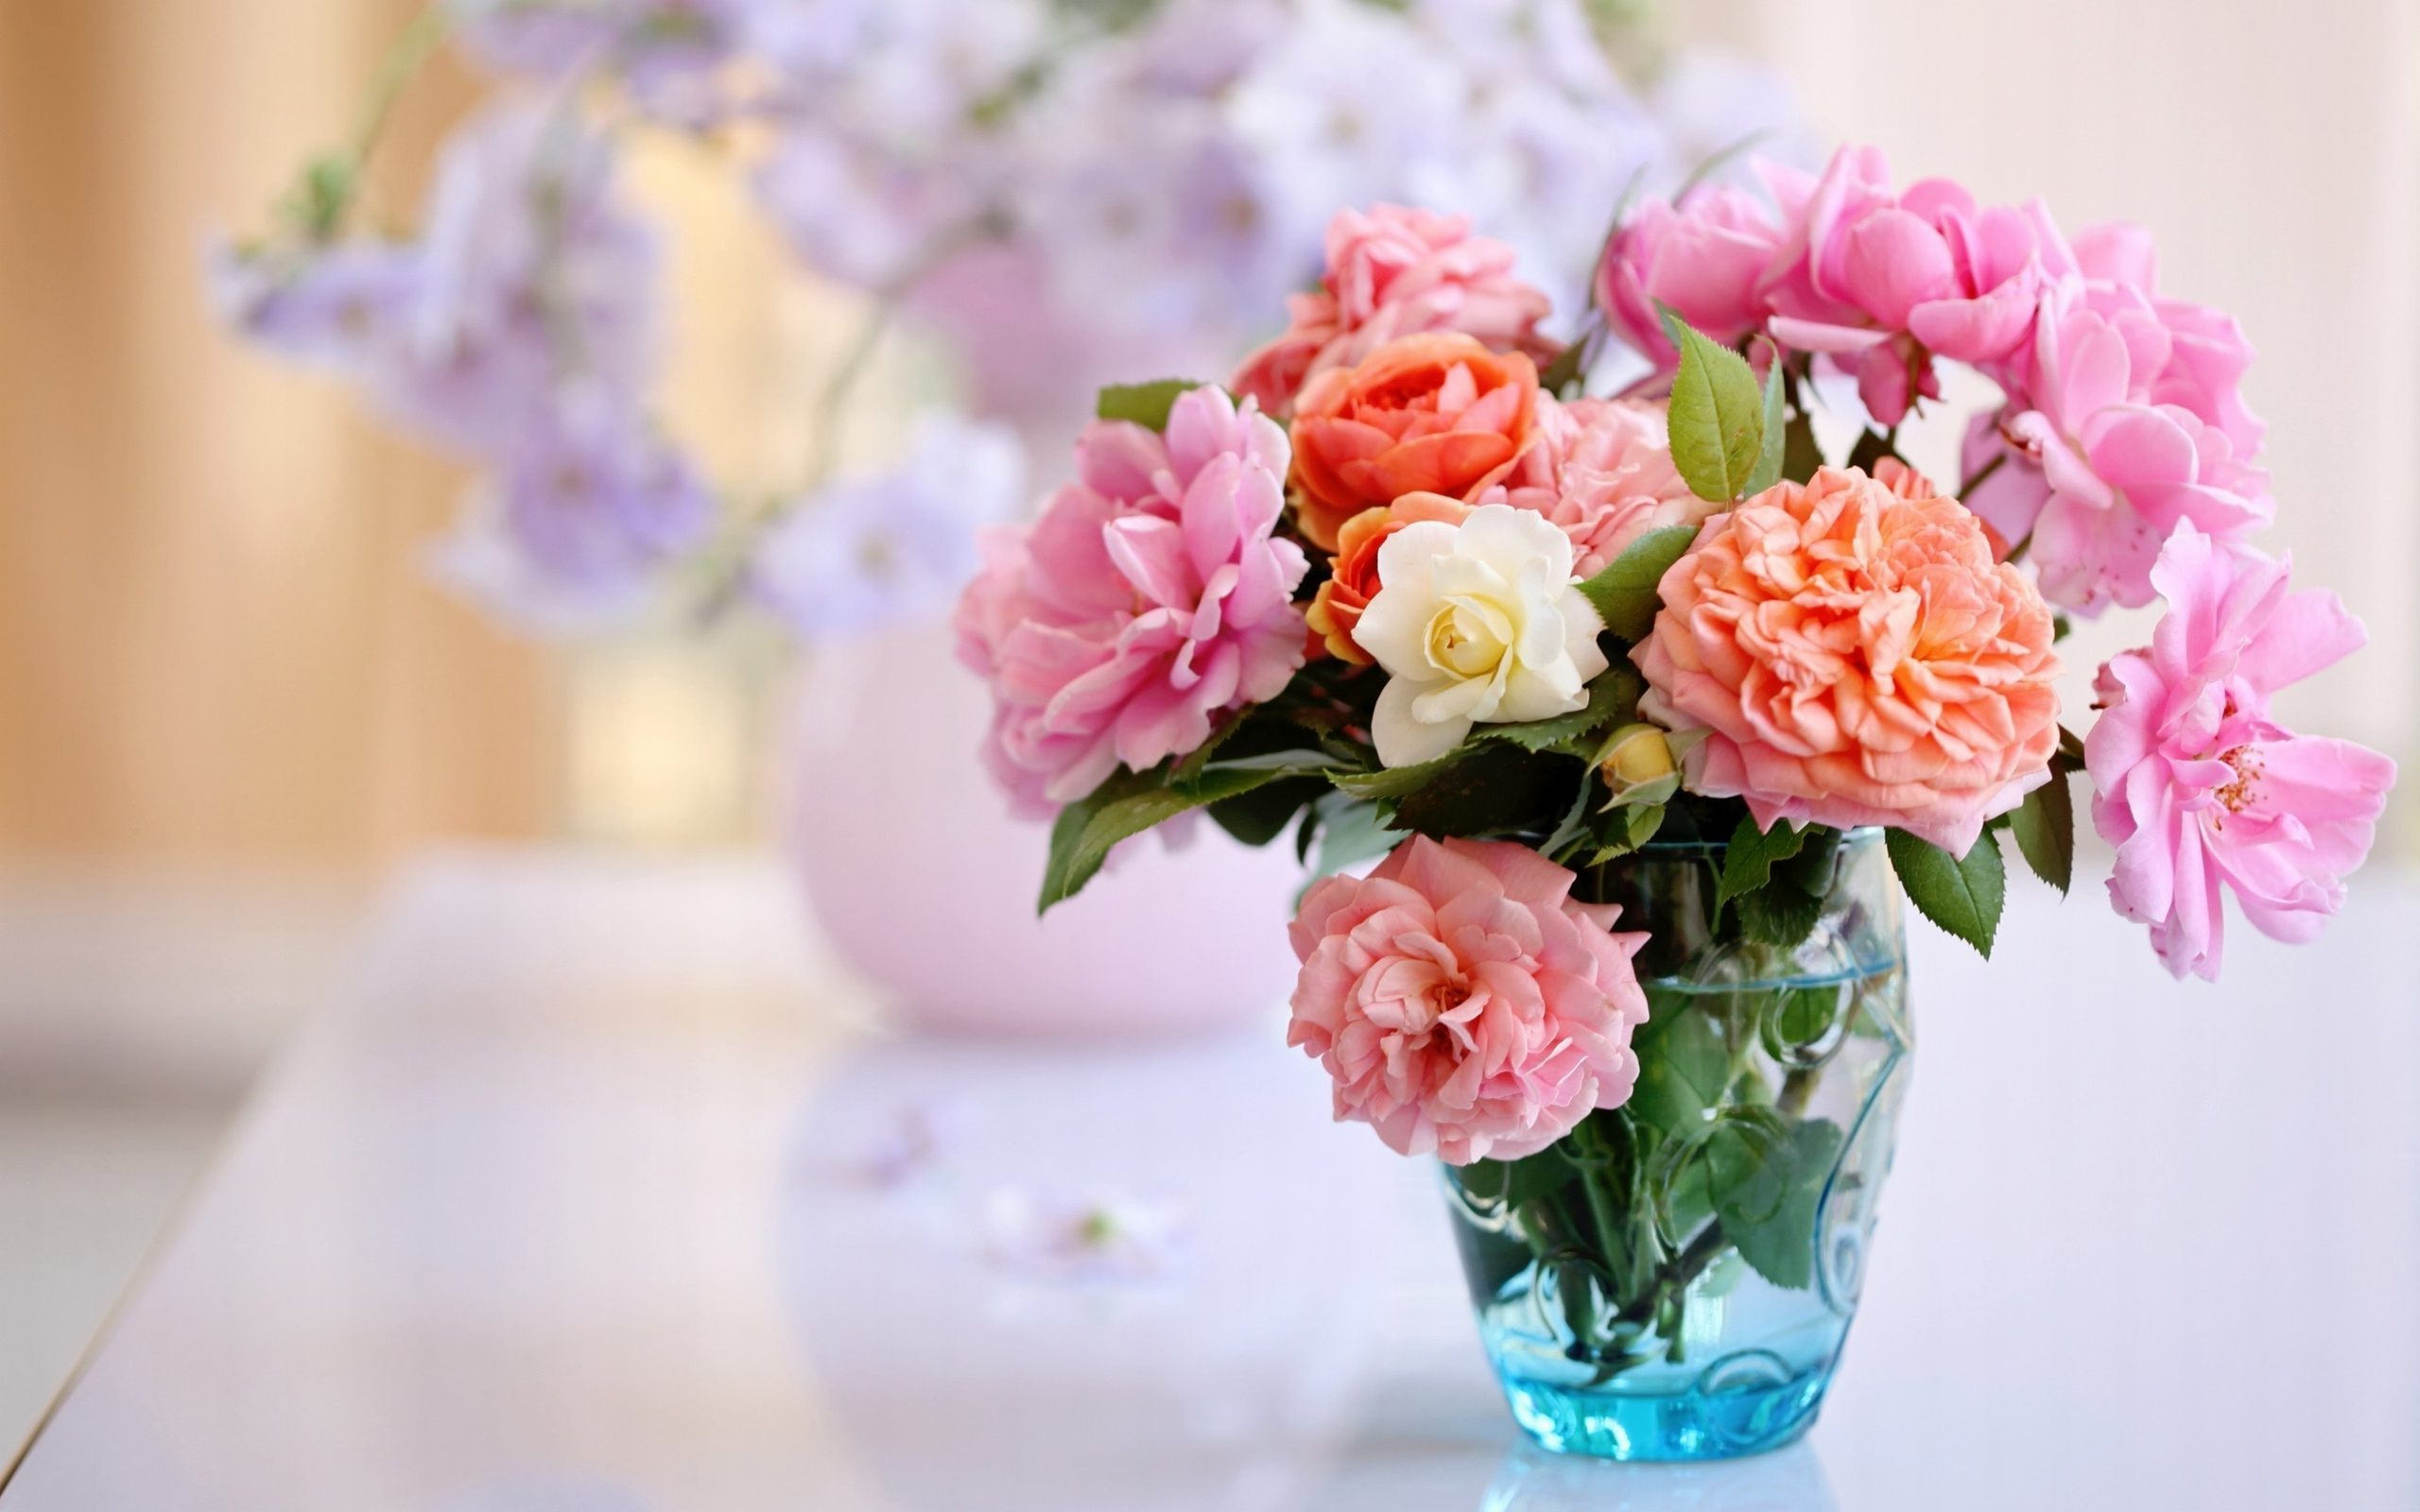 Wallpapers Of Beautiful Flowers Group Good Morning Images With Saturday 2560x1600 Download Hd Wallpaper Wallpapertip